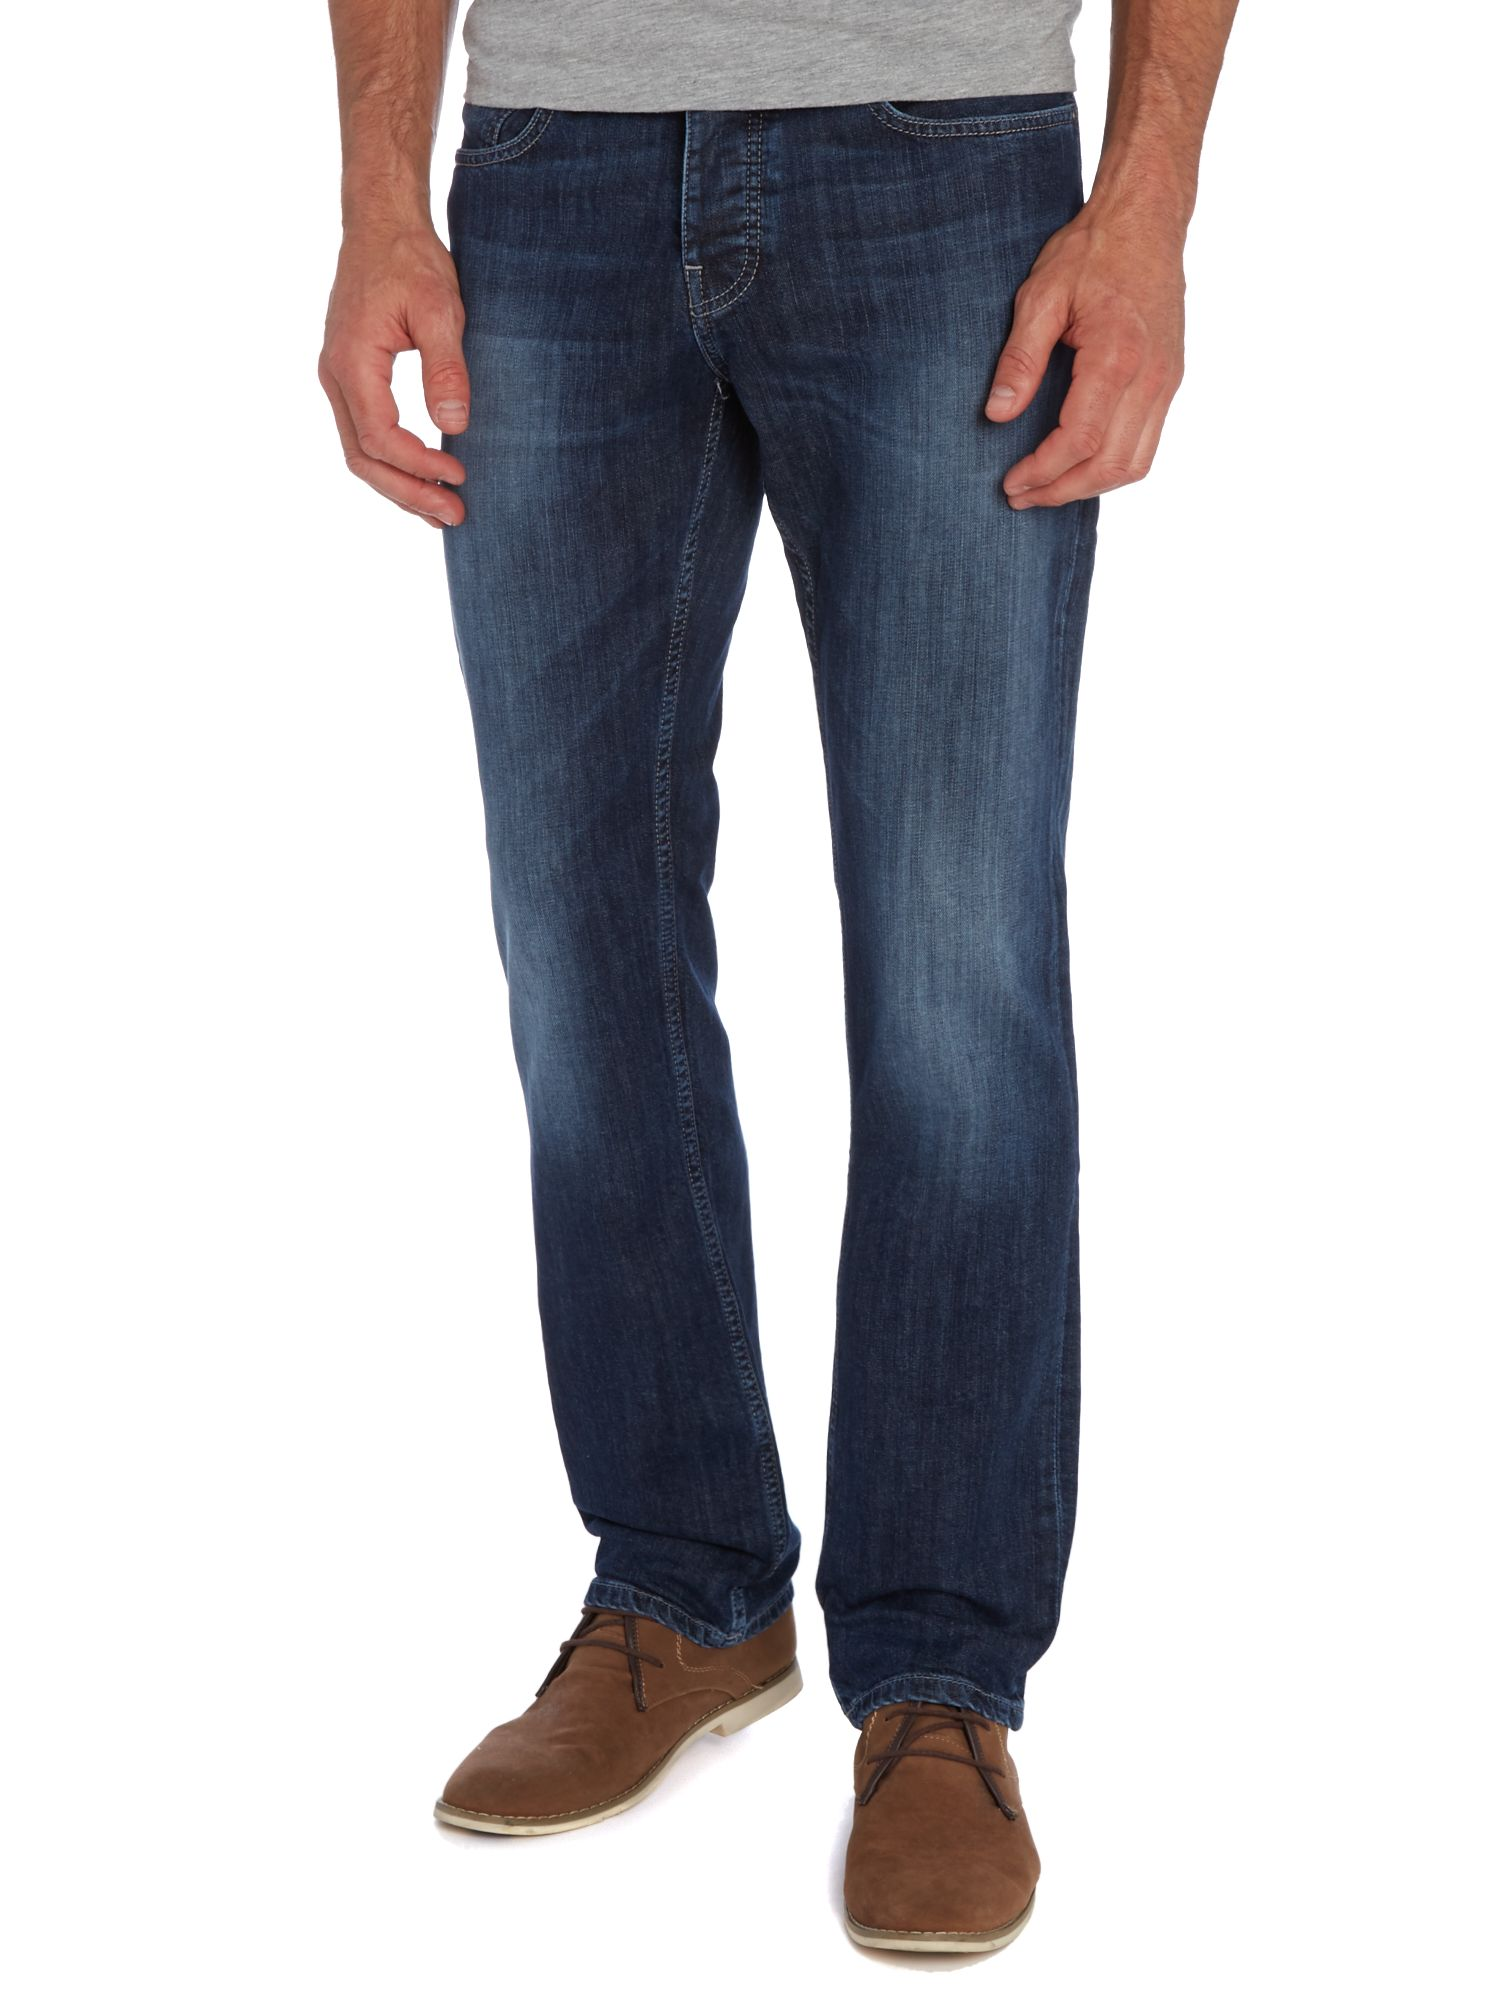 Orange 25 mid wash regular straight jean